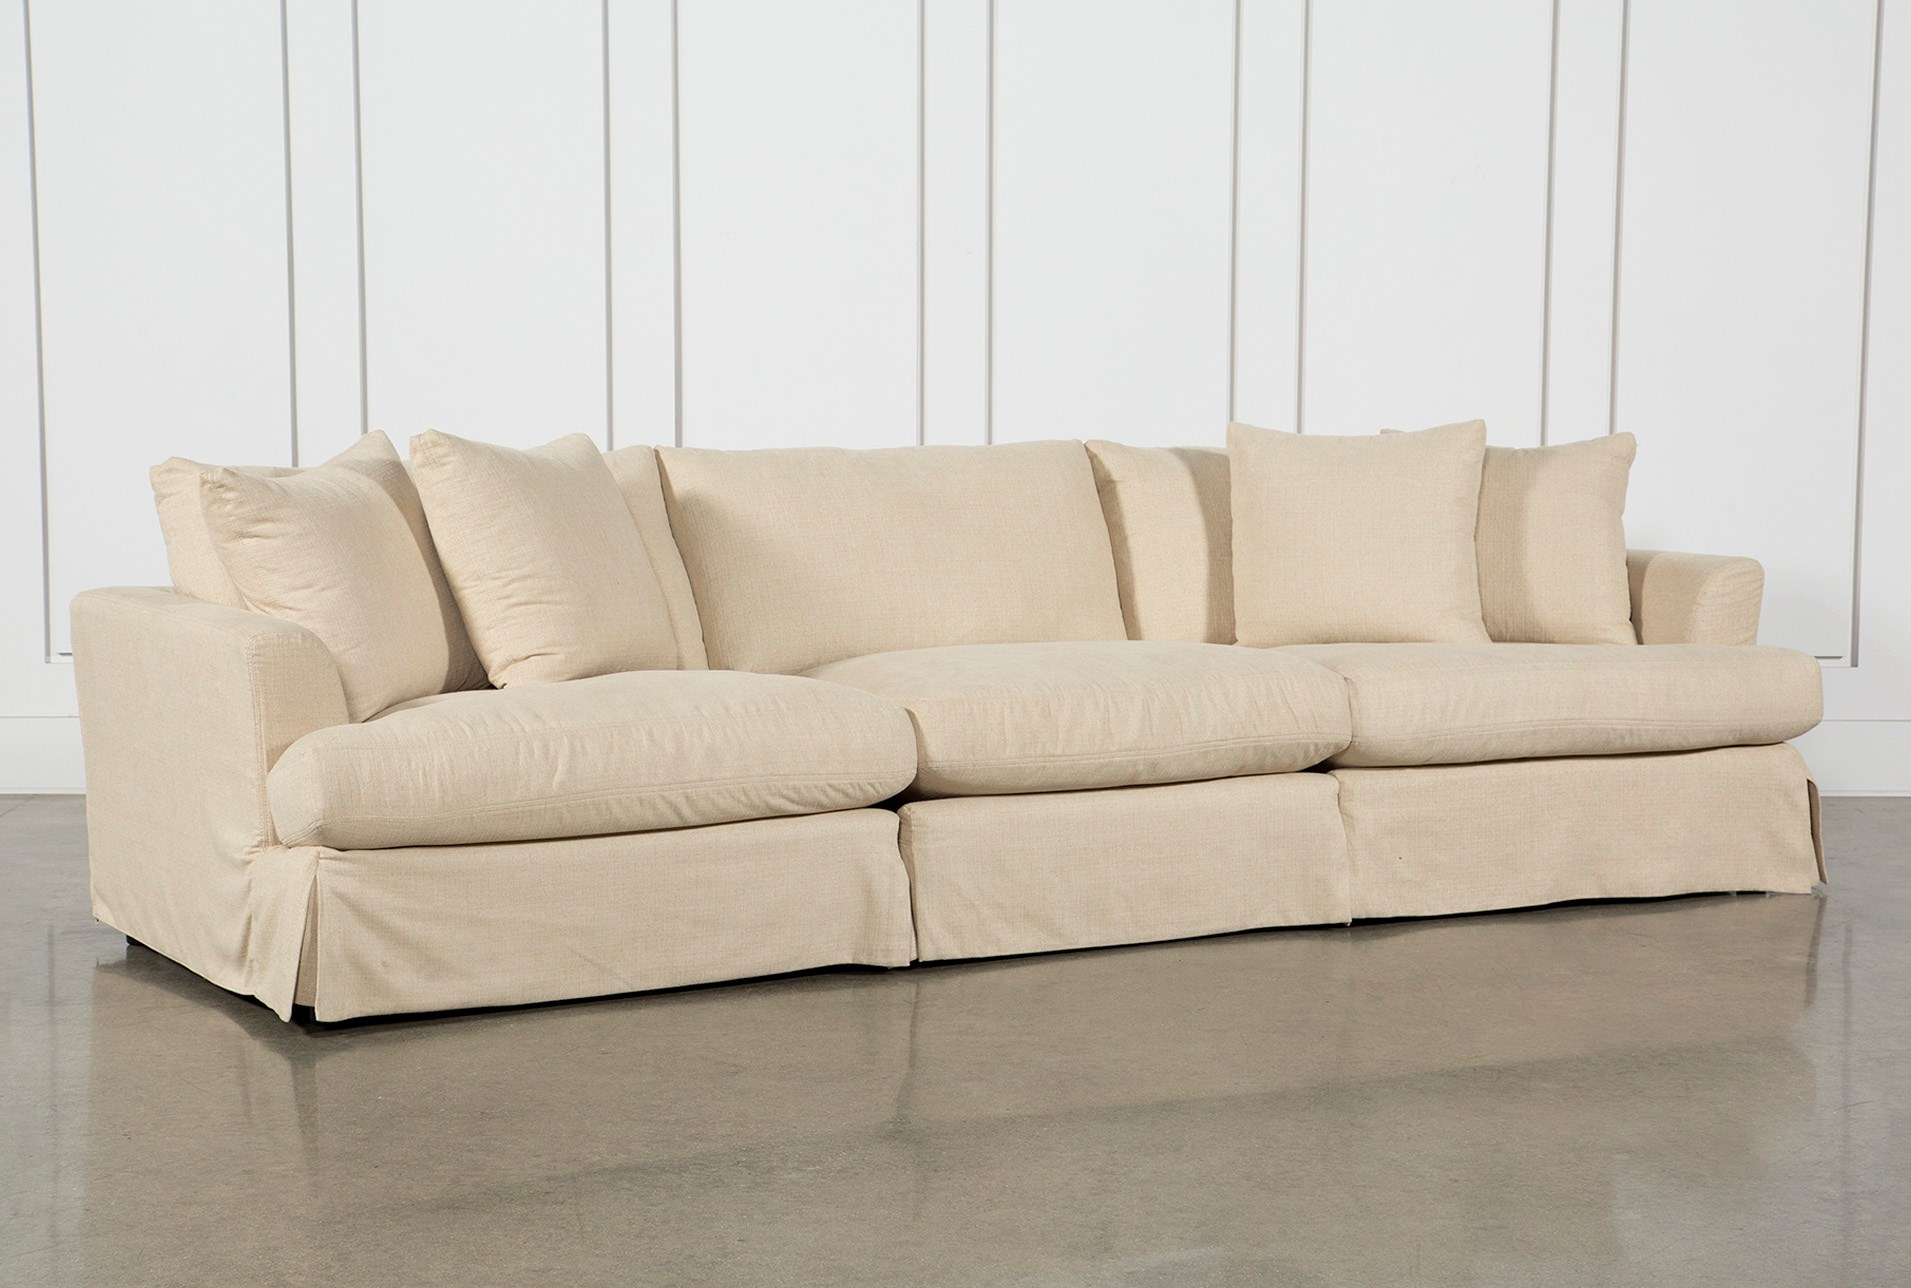 Solano Slipcovered 3 Piece Sofa Qty 1 Has Been Successfully Added To Your Cart